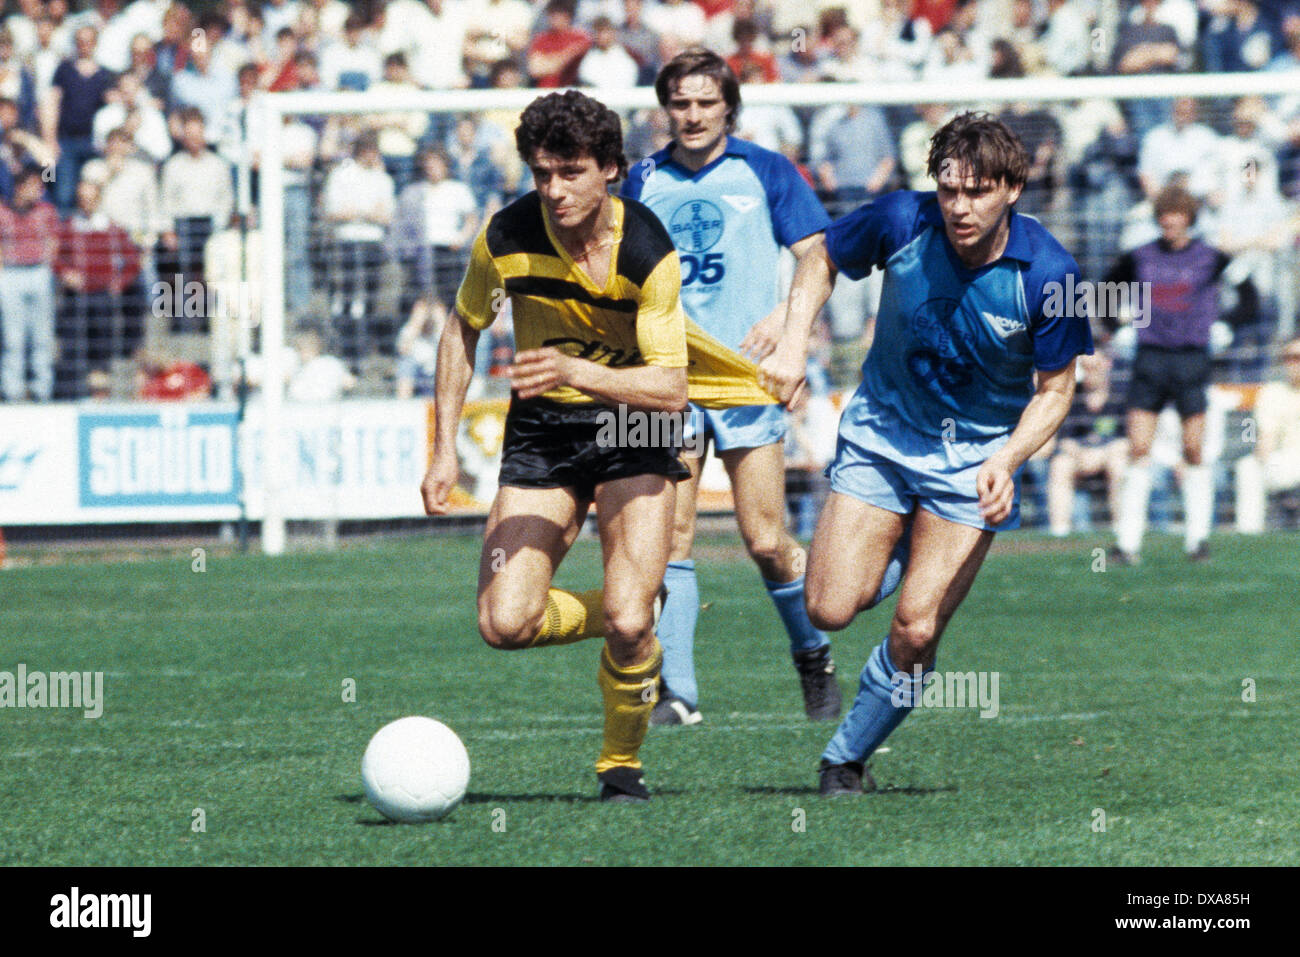 football, Bundesliga, 1983/1984, Grotenburg Stadium, FC Bayer 05 Uerdingen versus Borussia Dortmund 2:1, scene of the match, f.l.t.r. Erdal Keser (BVB) in ball possession, Horst Feilzer (Bayer), Wayne Thomas (Bayer) - Stock Image